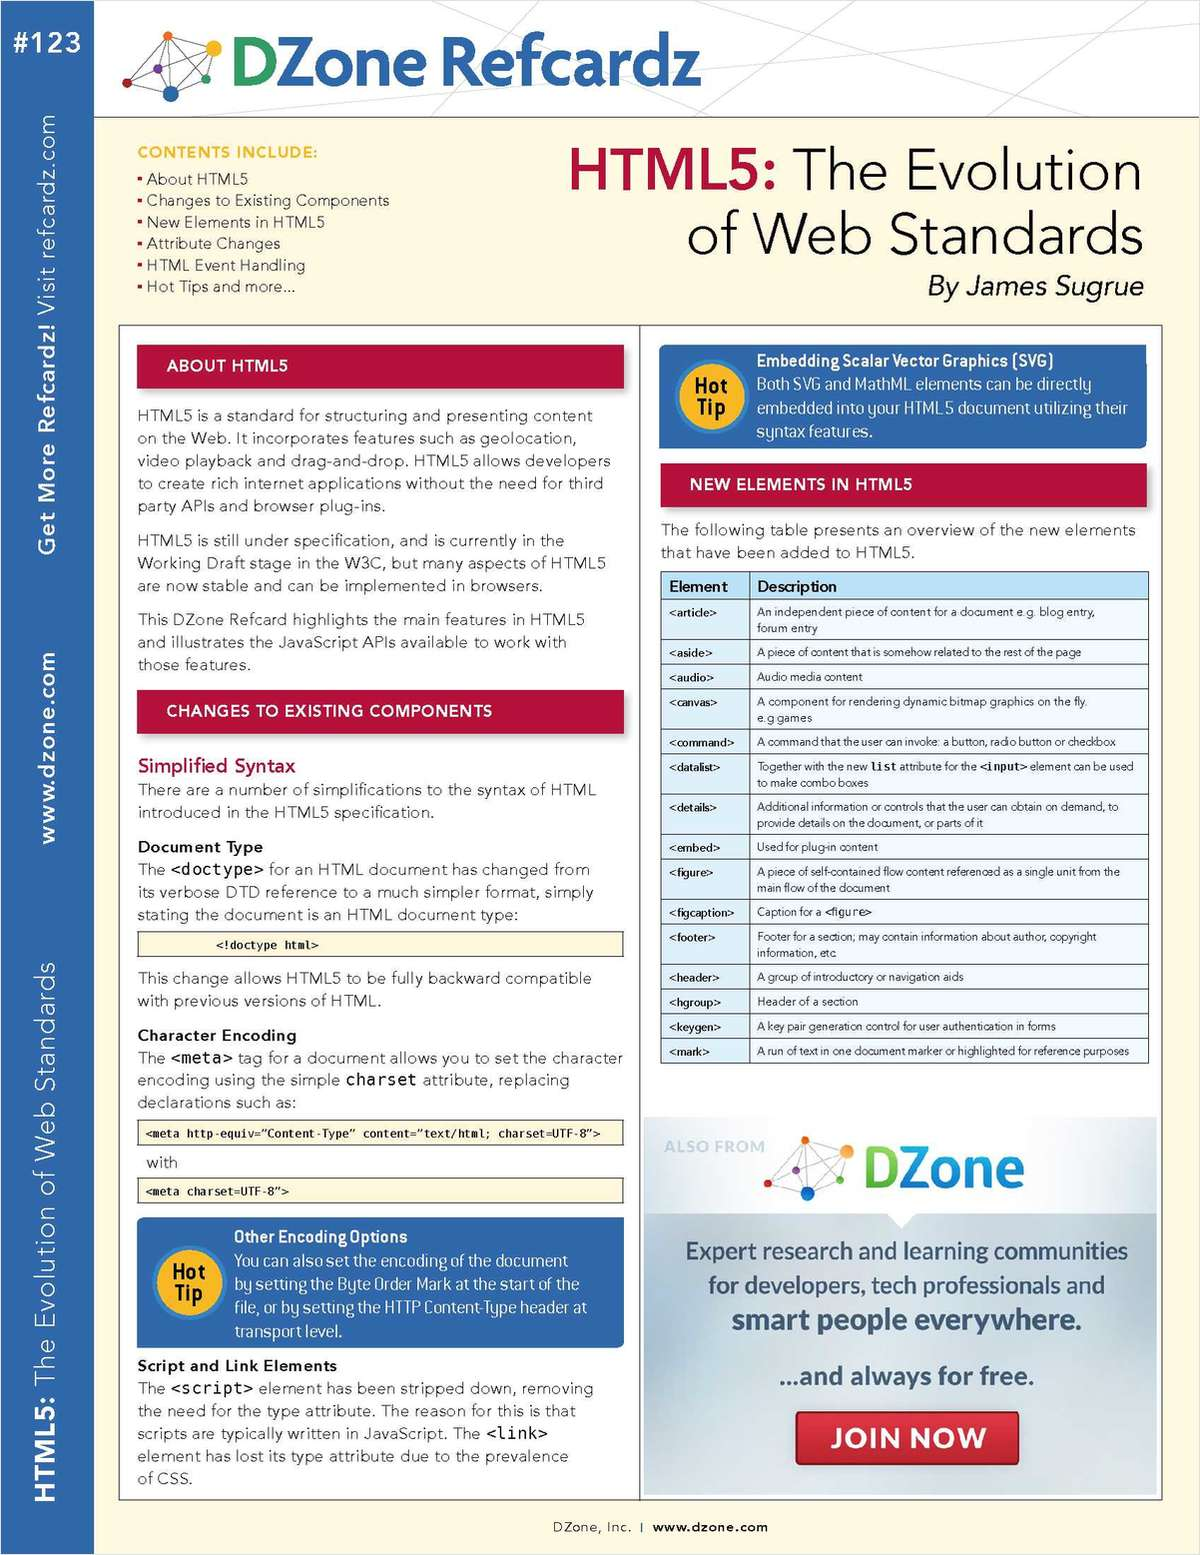 HTML5: The Evolution of Web Standards